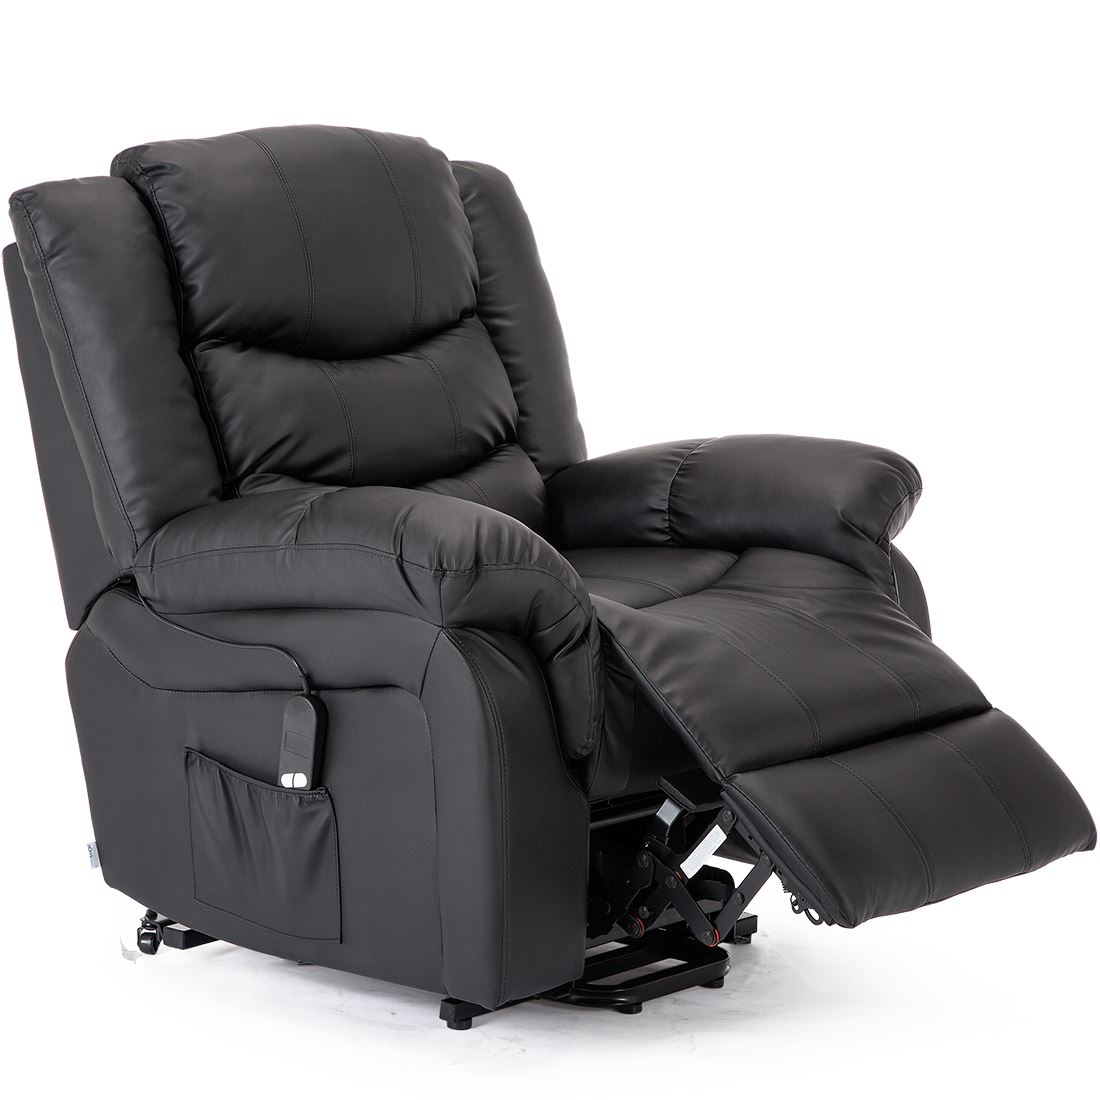 SEATTLE-ELECTRIC-RISE-REAL-LEATHER-RECLINER-ARMCHAIR-SOFA-HOME-LOUNGE-CHAIR thumbnail 6